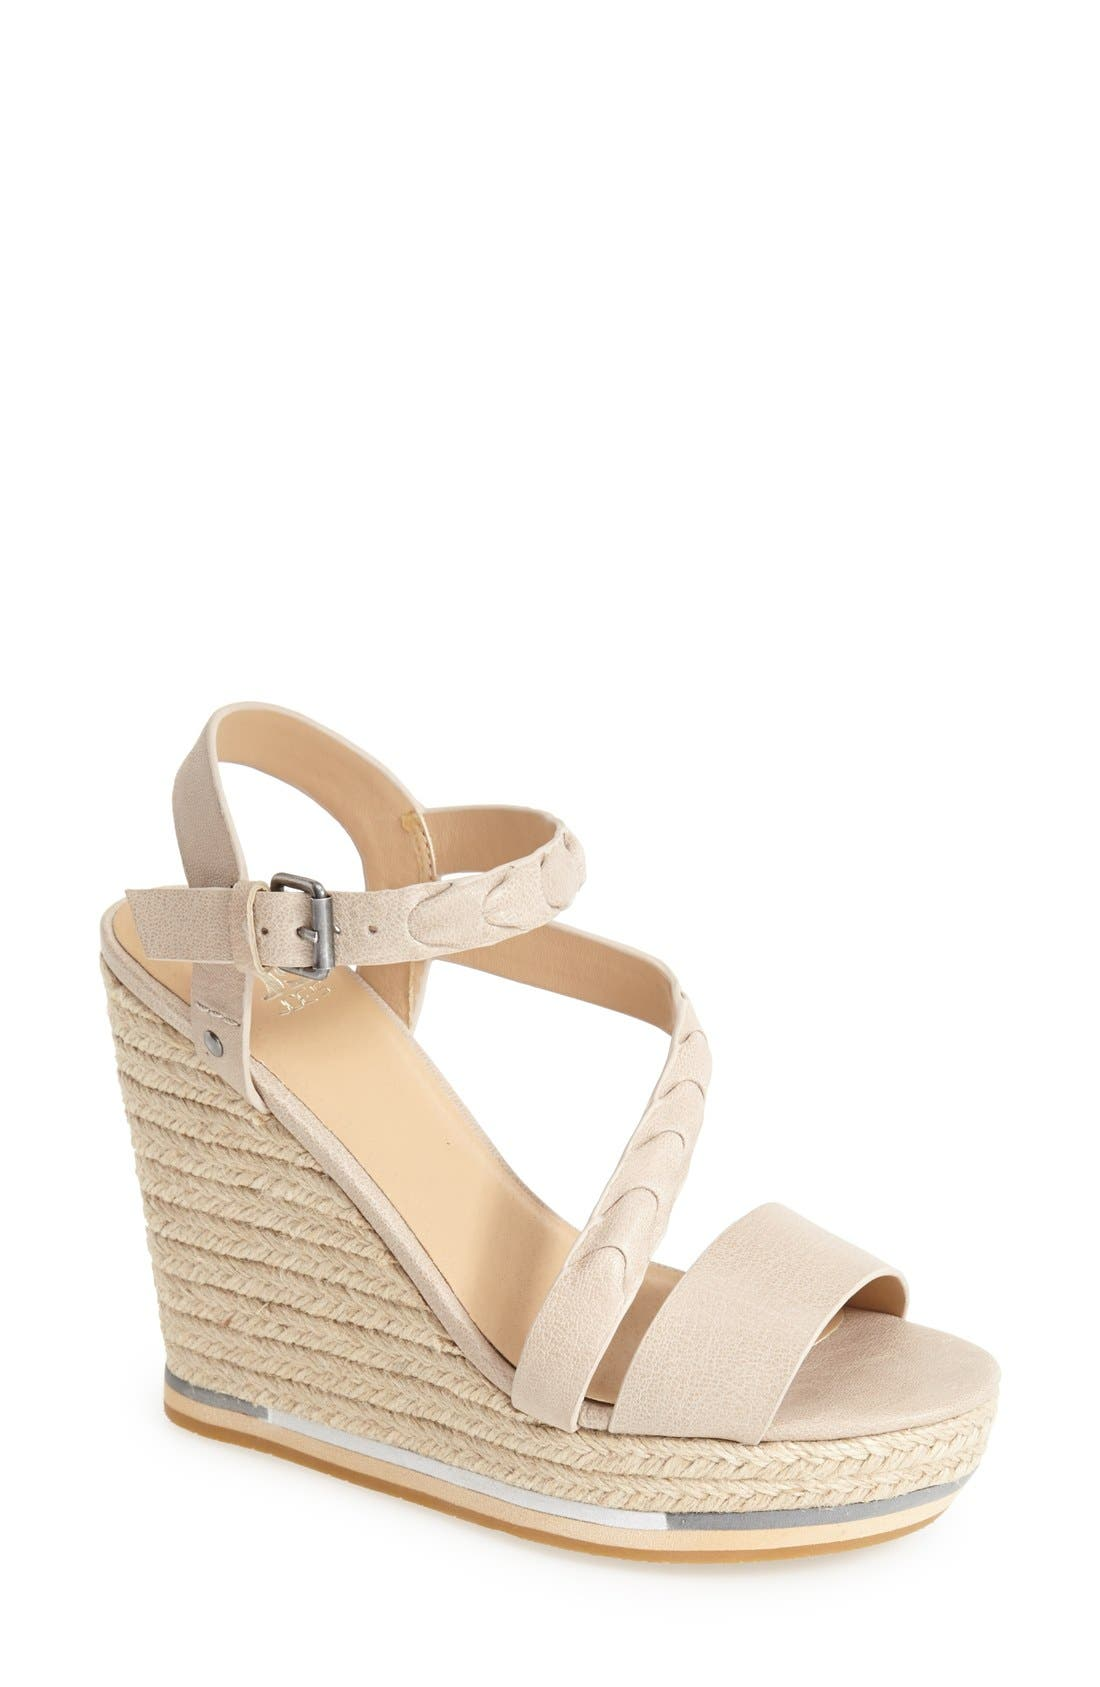 Main Image - Joe's 'Rane' Espadrille Wedge Sandal (Women)